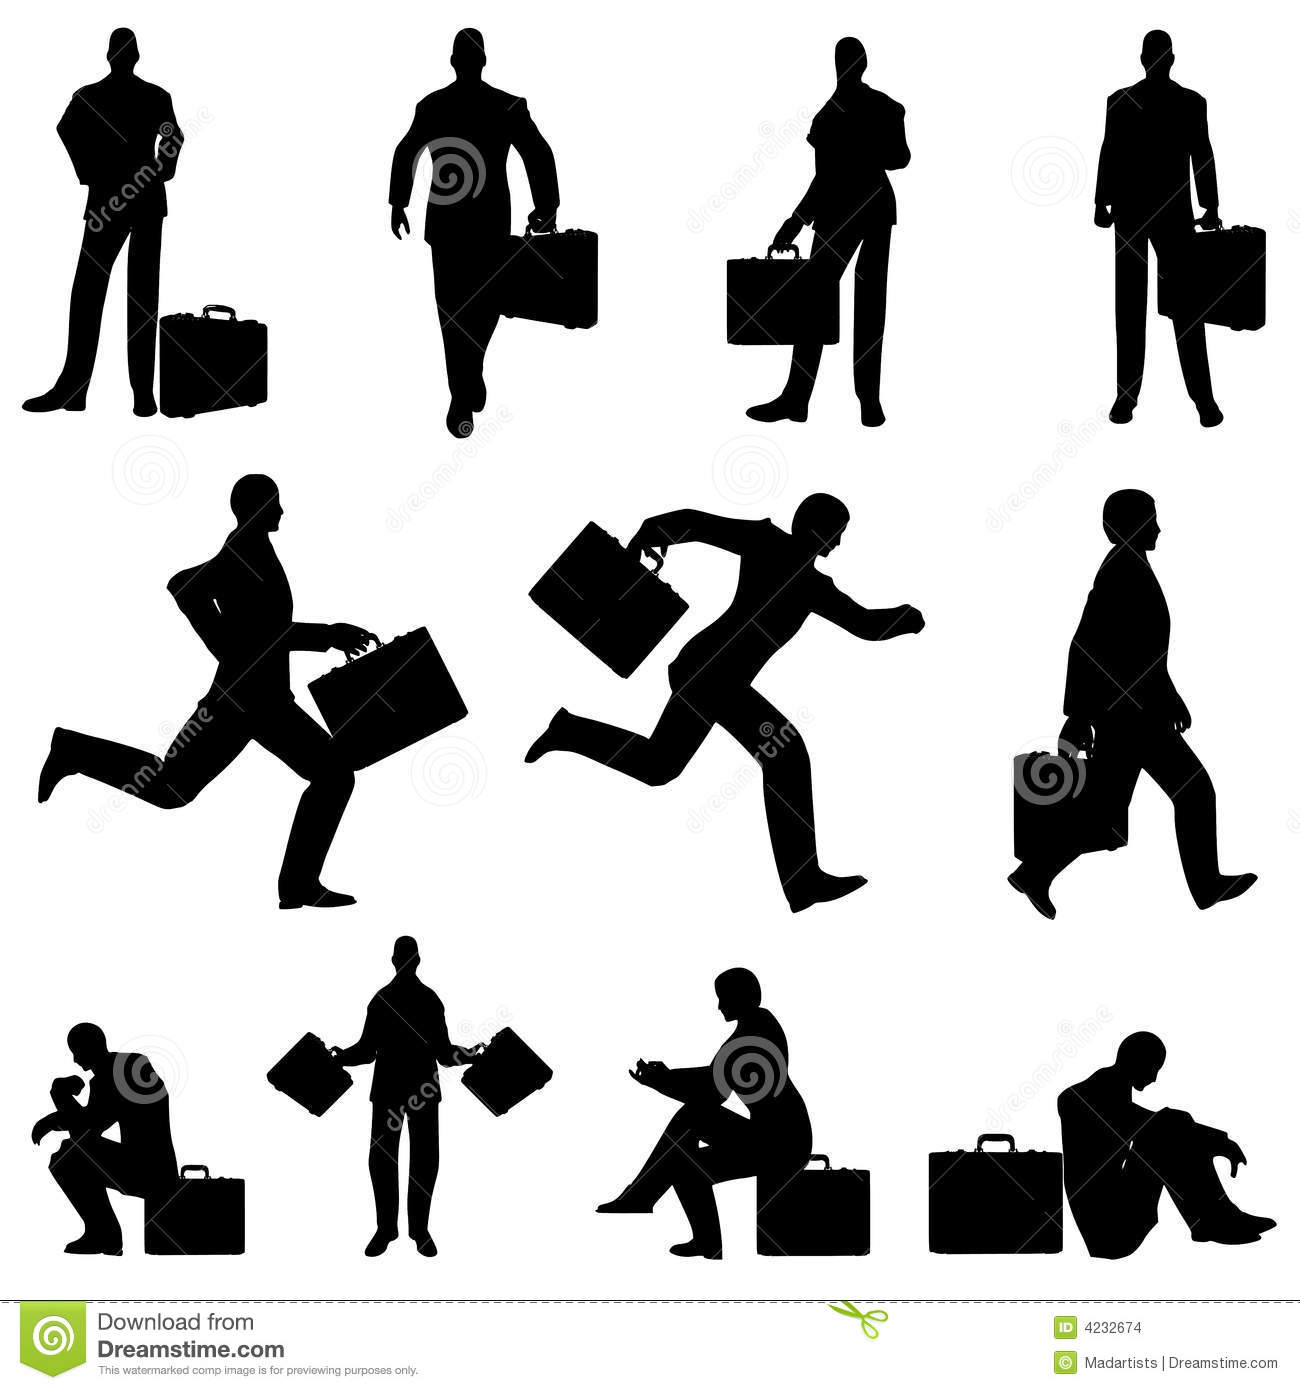 businessman briefcase silhouettes stock illustration pressure washing clipart in black and white pressure washing clipart free to use